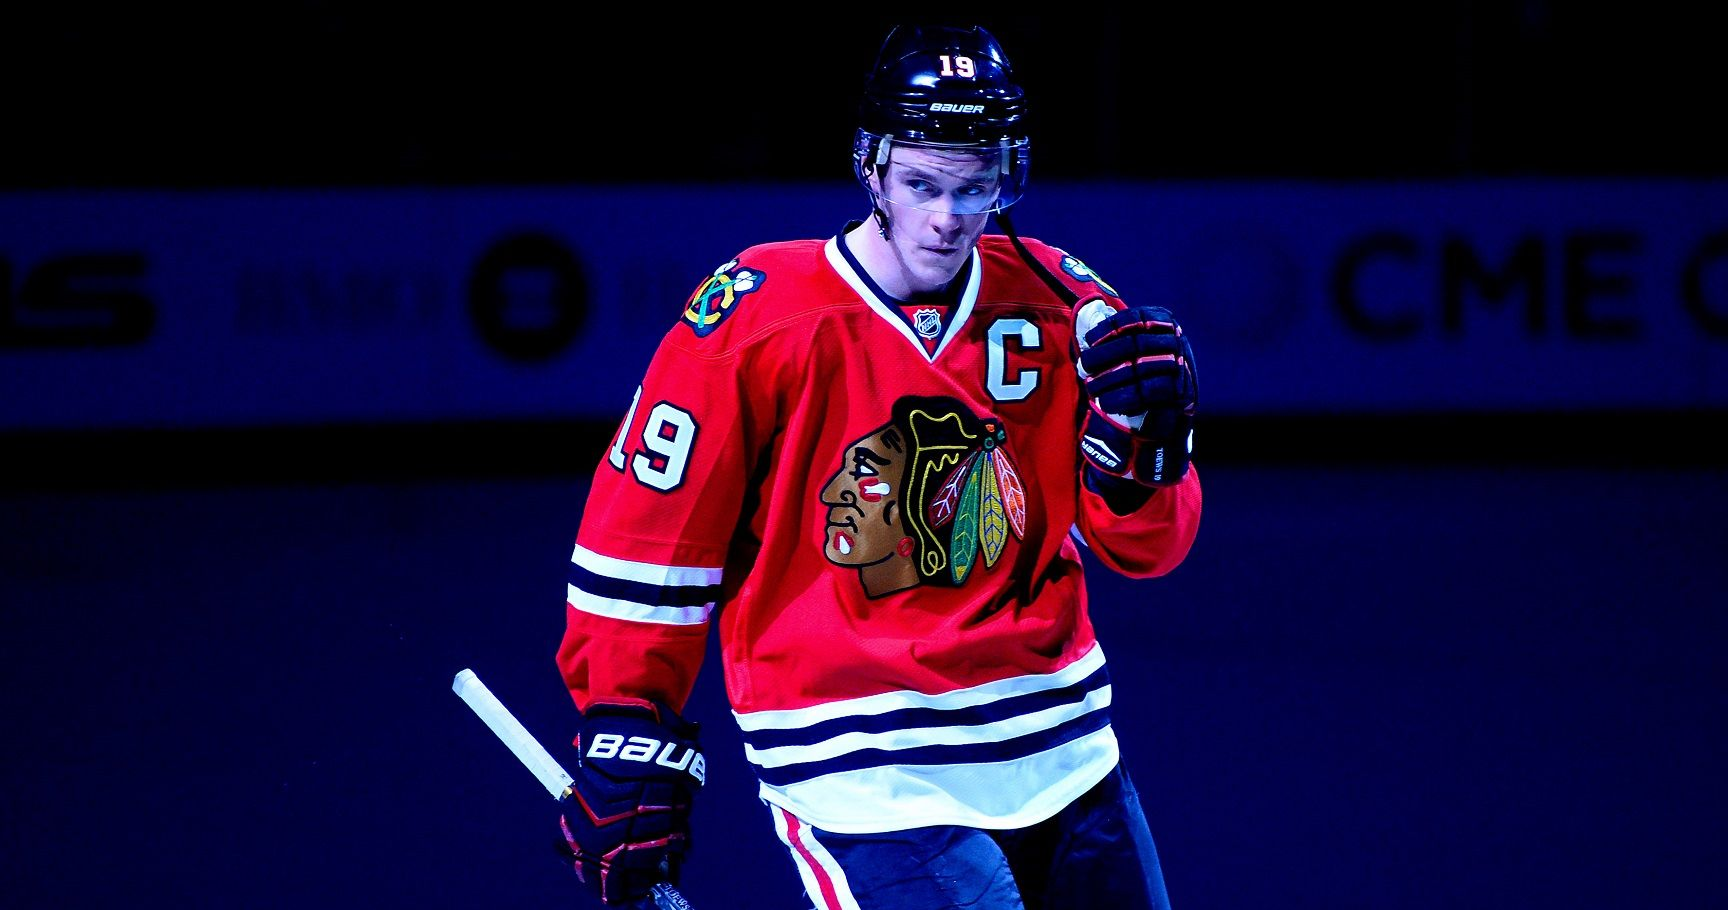 Pictures of jonathan toews Patrick Kane coloring page Free Printable Coloring Pages